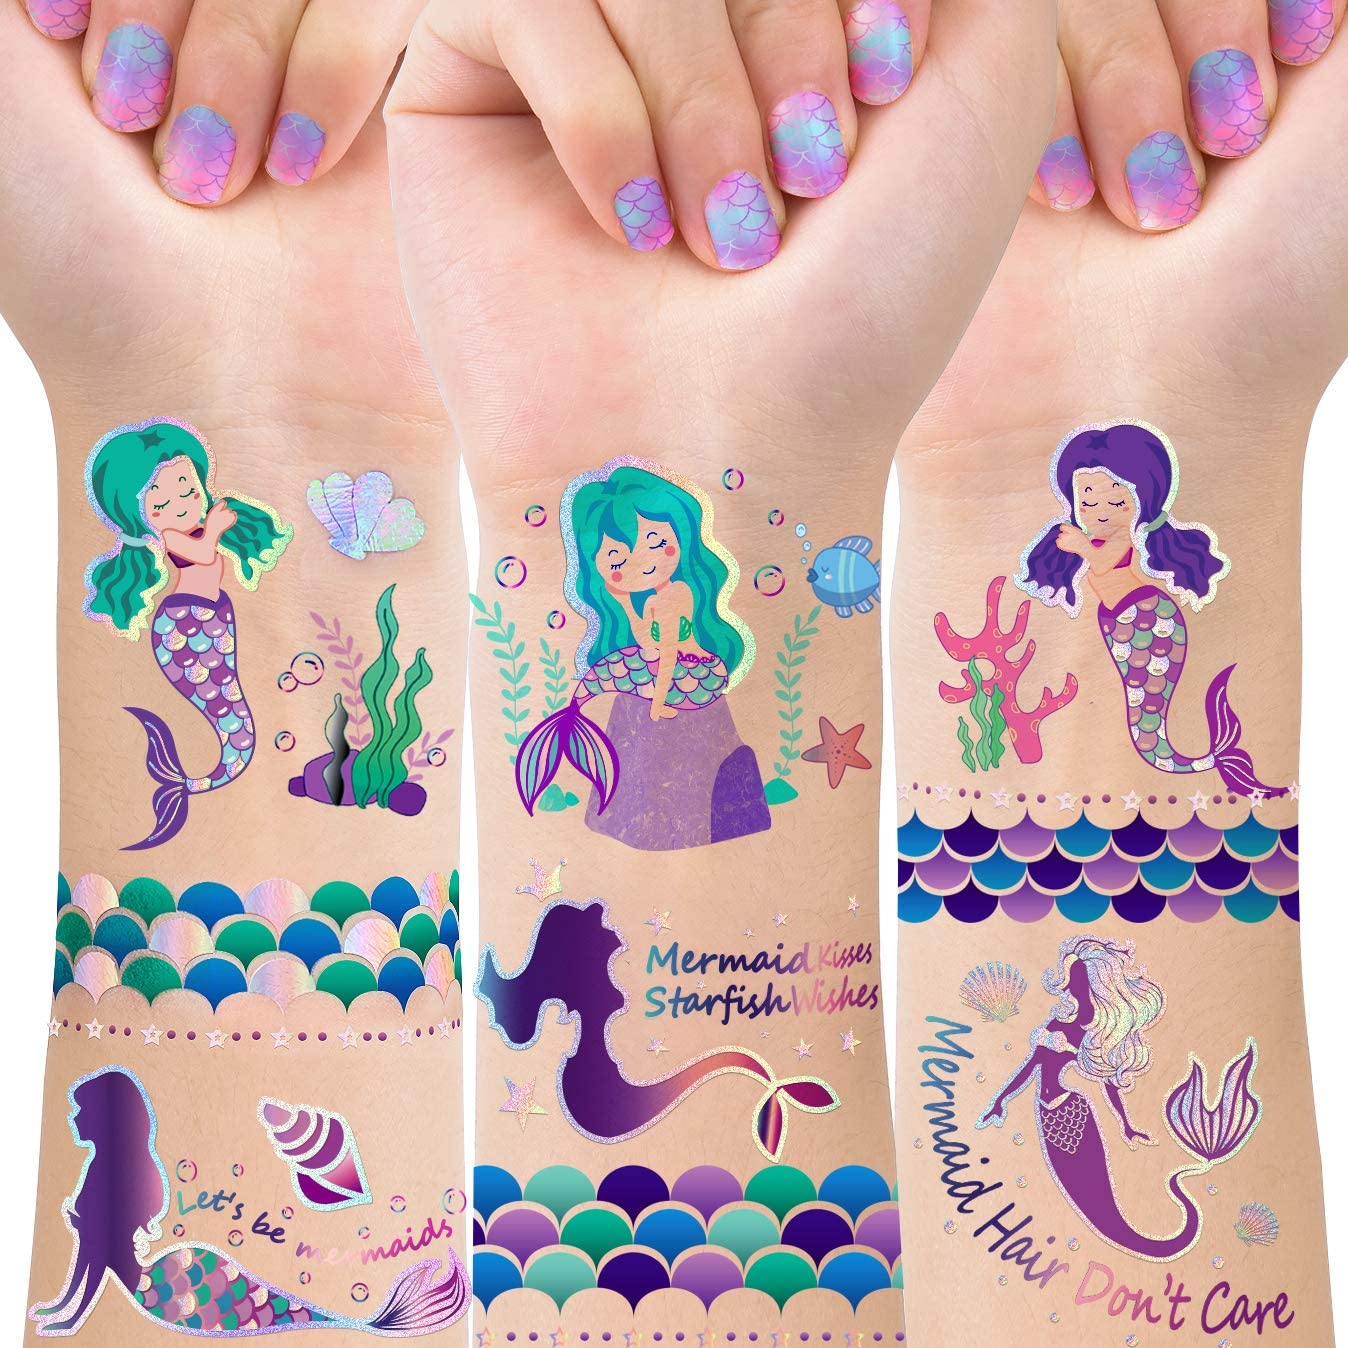 TMCCE Mermaid Party Supplies Mermaid Tattoos For Kids-Mermaid Birthday Party Favors-4 Sheet Glitter More Than 32 Styles Mermaid Tail Tattoos Party Decoration